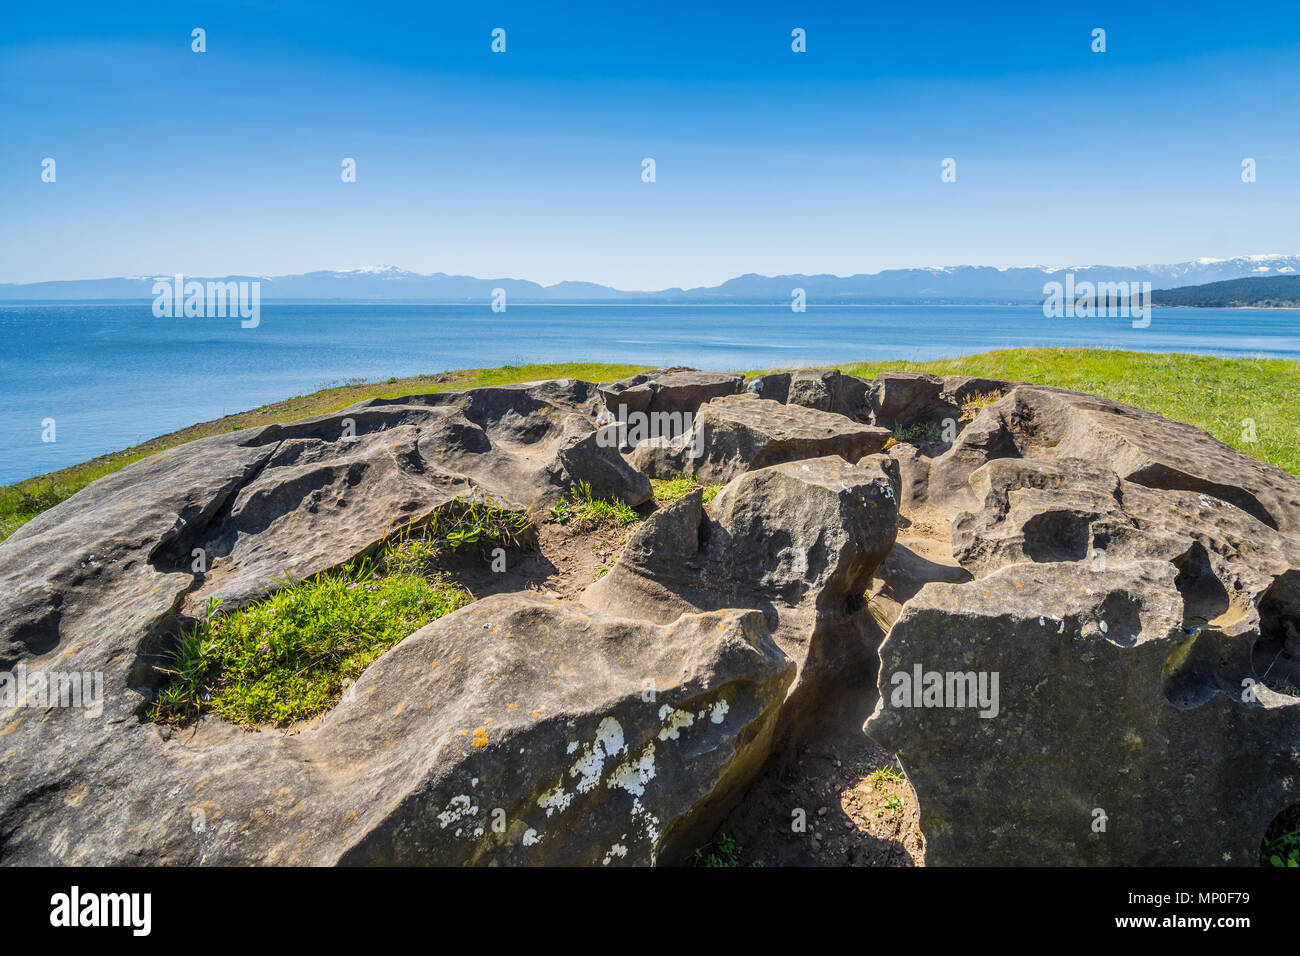 Rocky coastline, Helliwell Provincial Park, Hornby Island, BC, Canada. - Stock Image